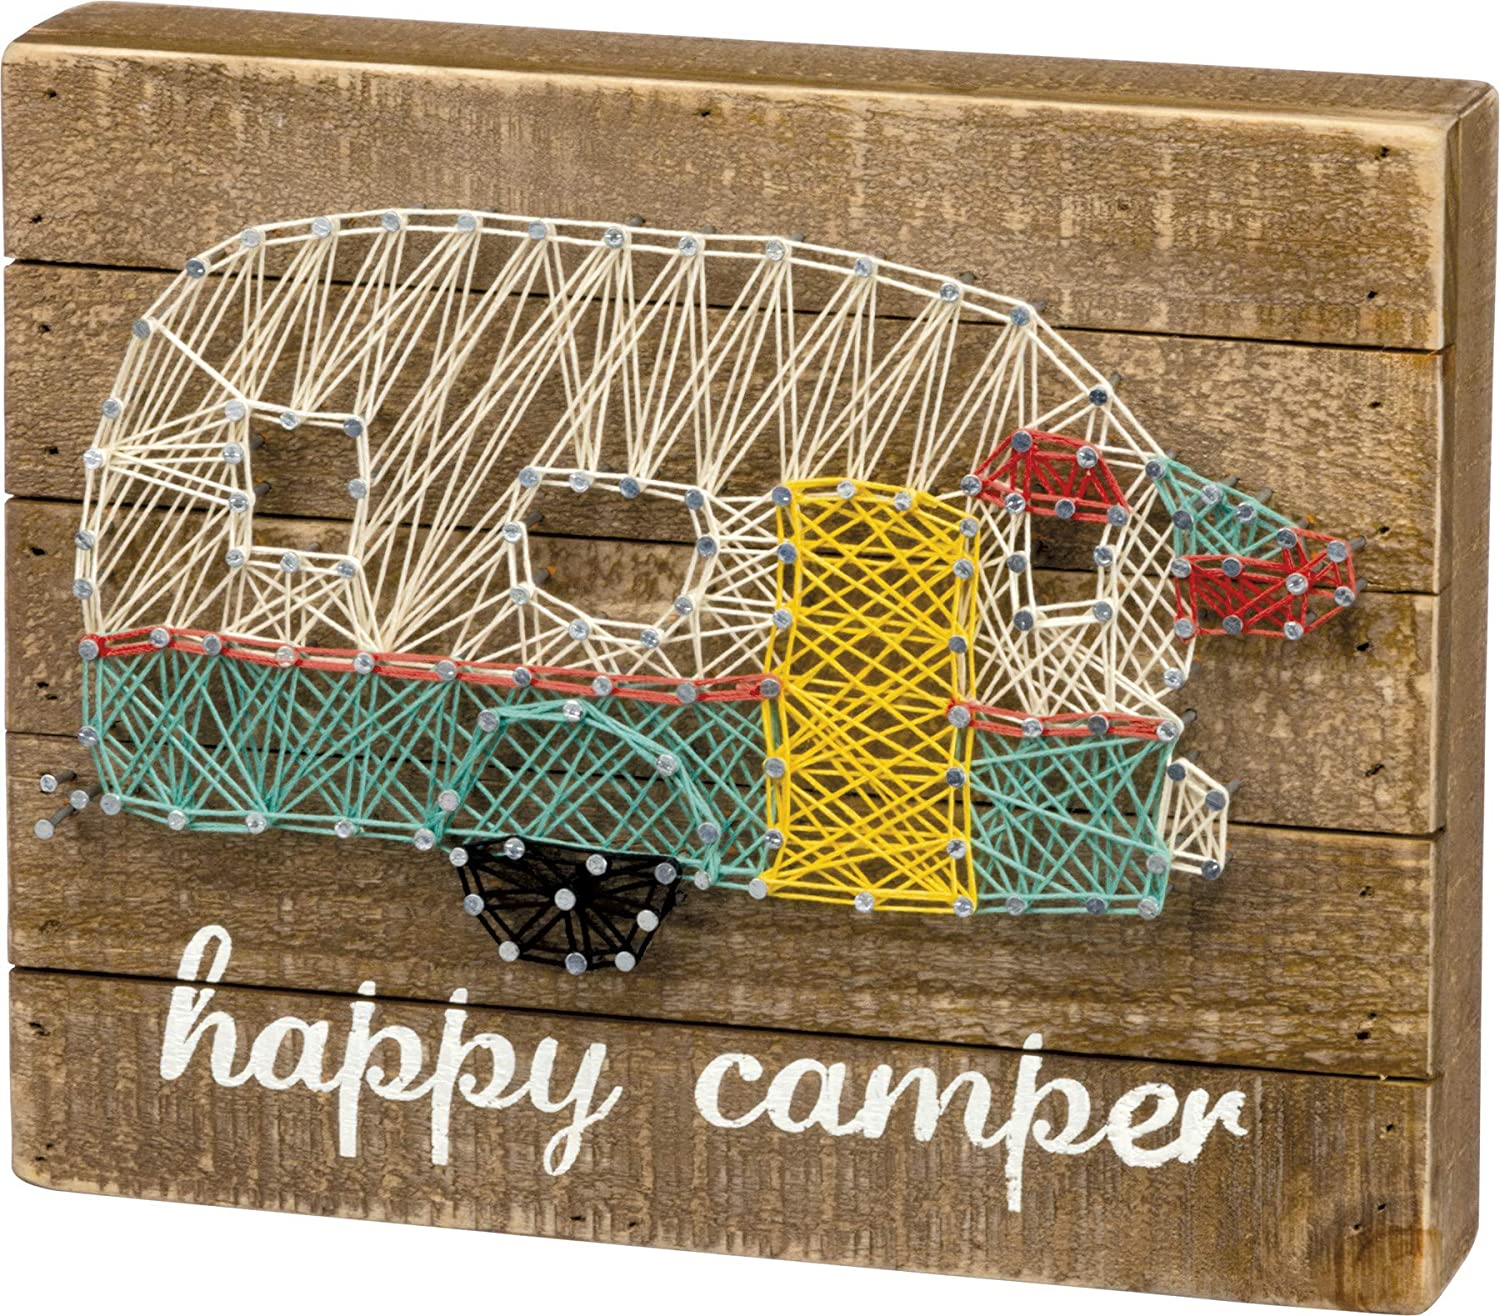 Primitives by Kathy 30458 String Art Wood Box Sign, 10